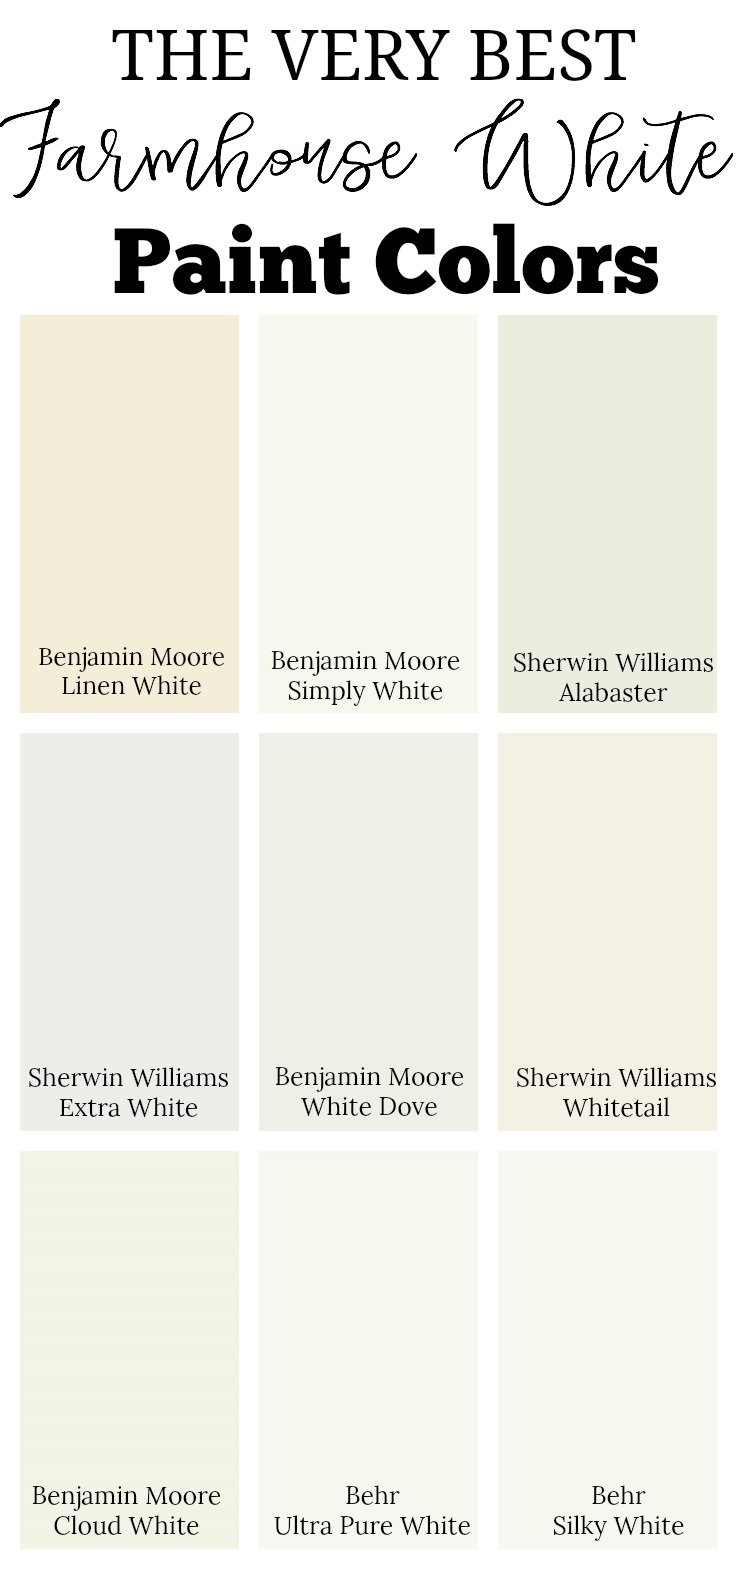 The Best Neutral Paint Colors For Your Home,Barefoot Contessa Meatloaf Video